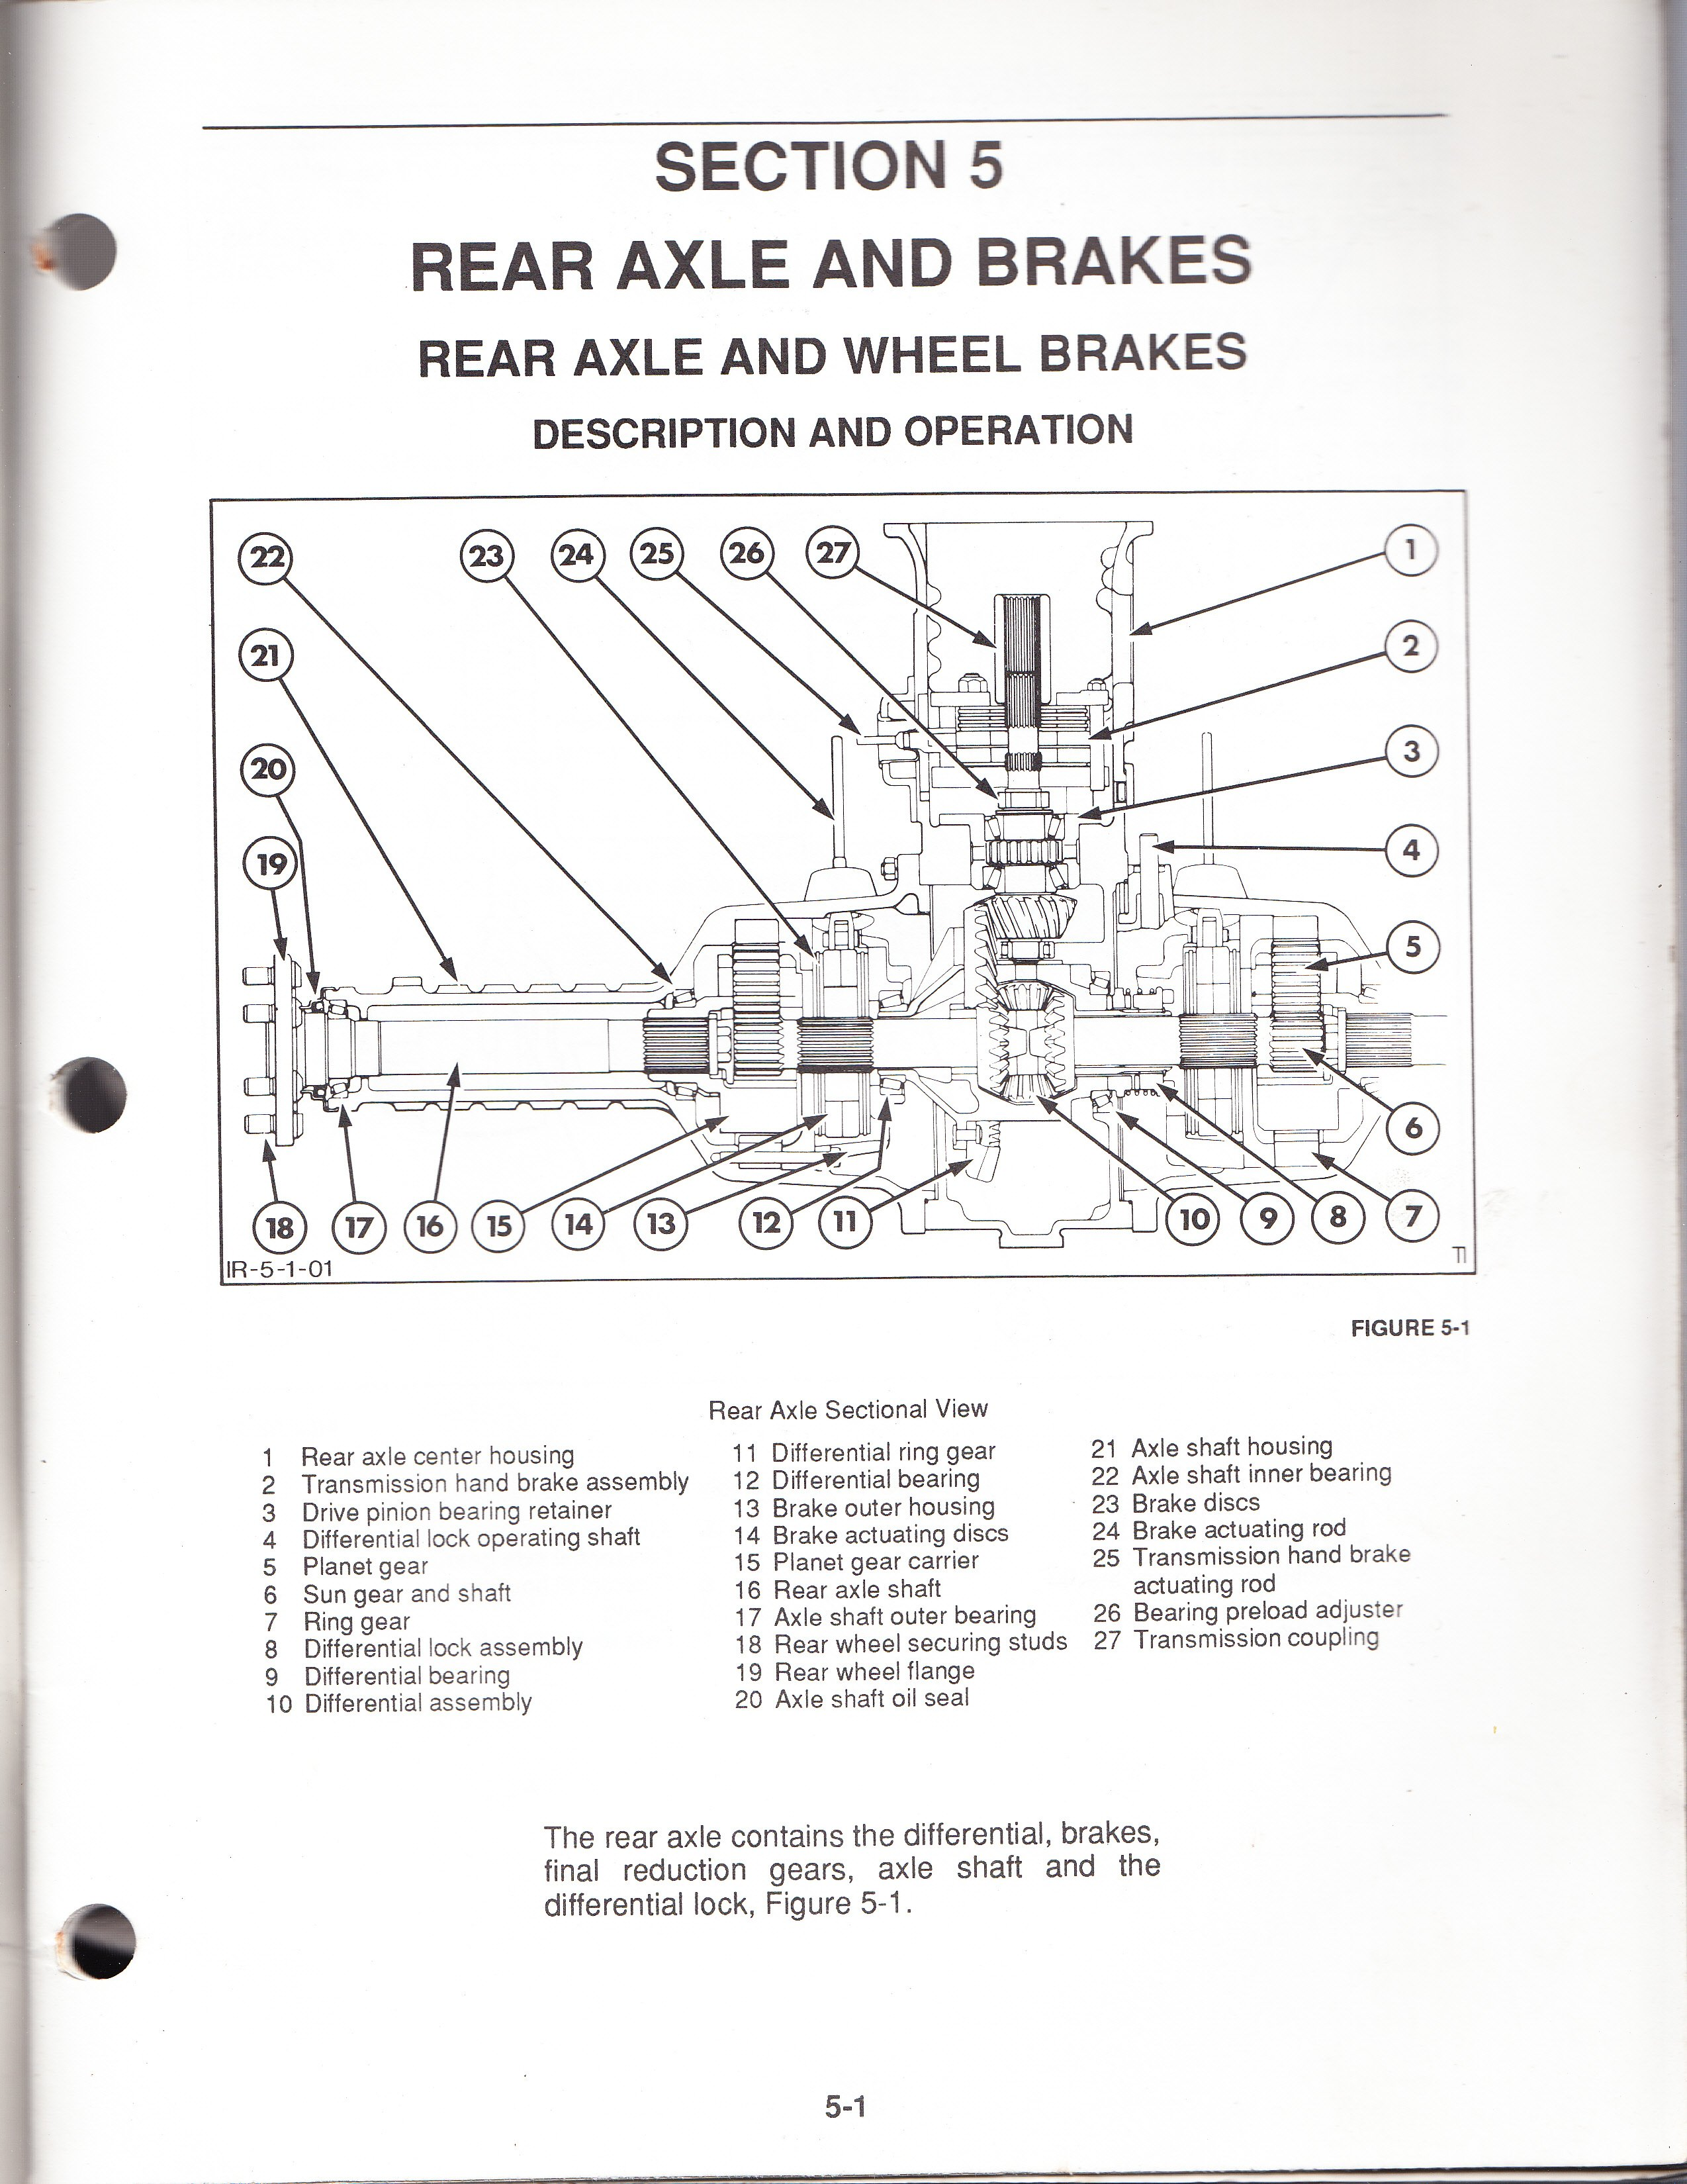 I Have A 555d Ford Backhoe And The Brakes Just Disappeared Left. Ford. Ford 555 Backhoe Front Axle Diagram At Scoala.co